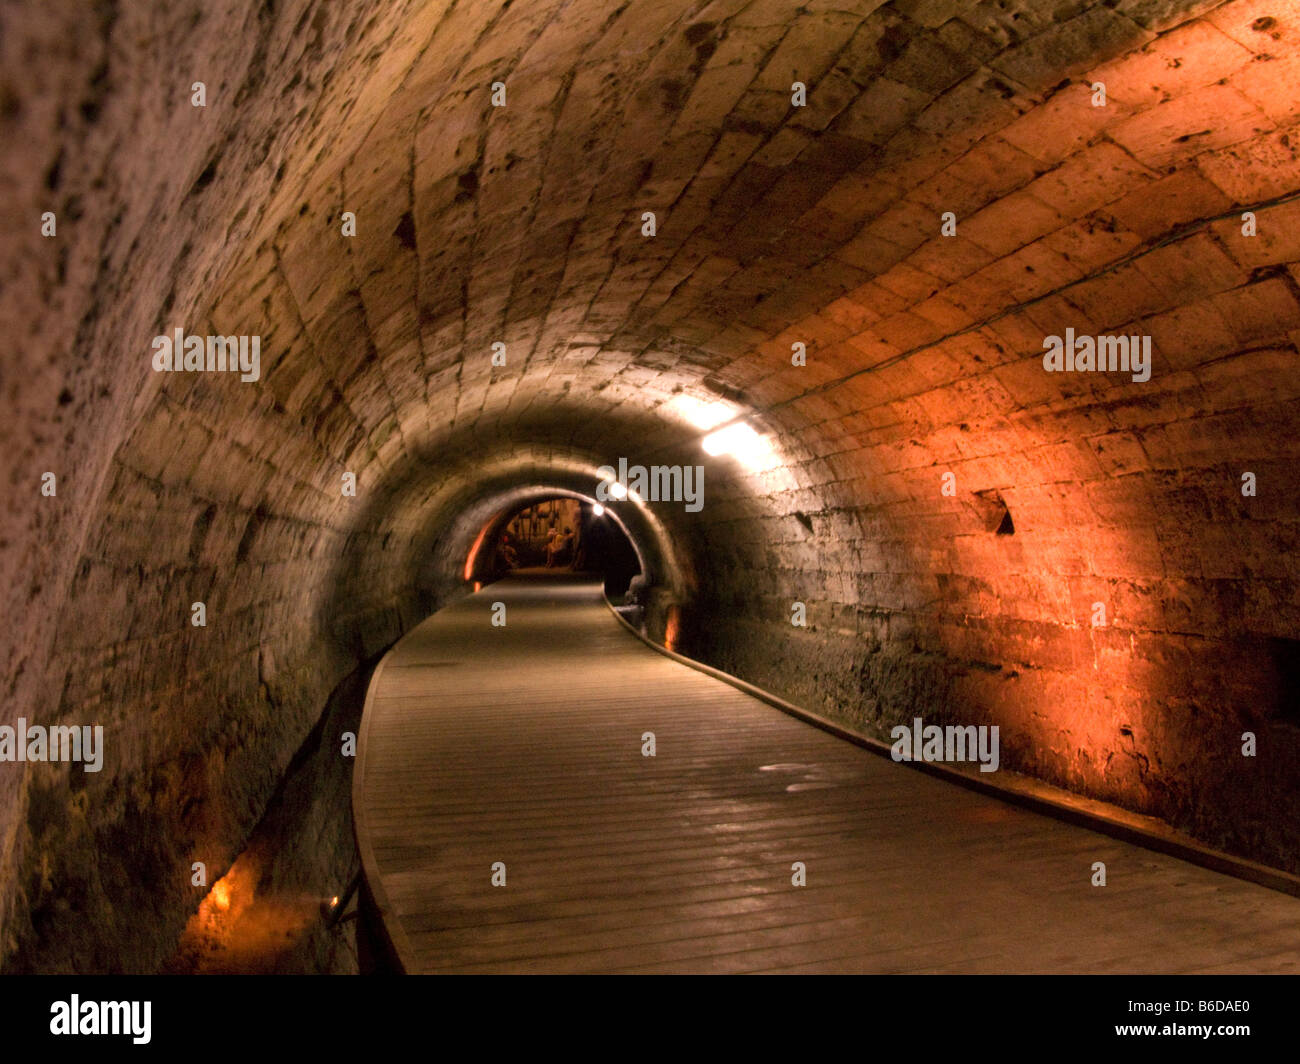 UNDERGROUND MEDIEVAL KNIGHTS TEMPLAR WATER TUNNEL CITADEL ACCO OLD TOWN WESTERN GALILEE ISRAEL - Stock Image